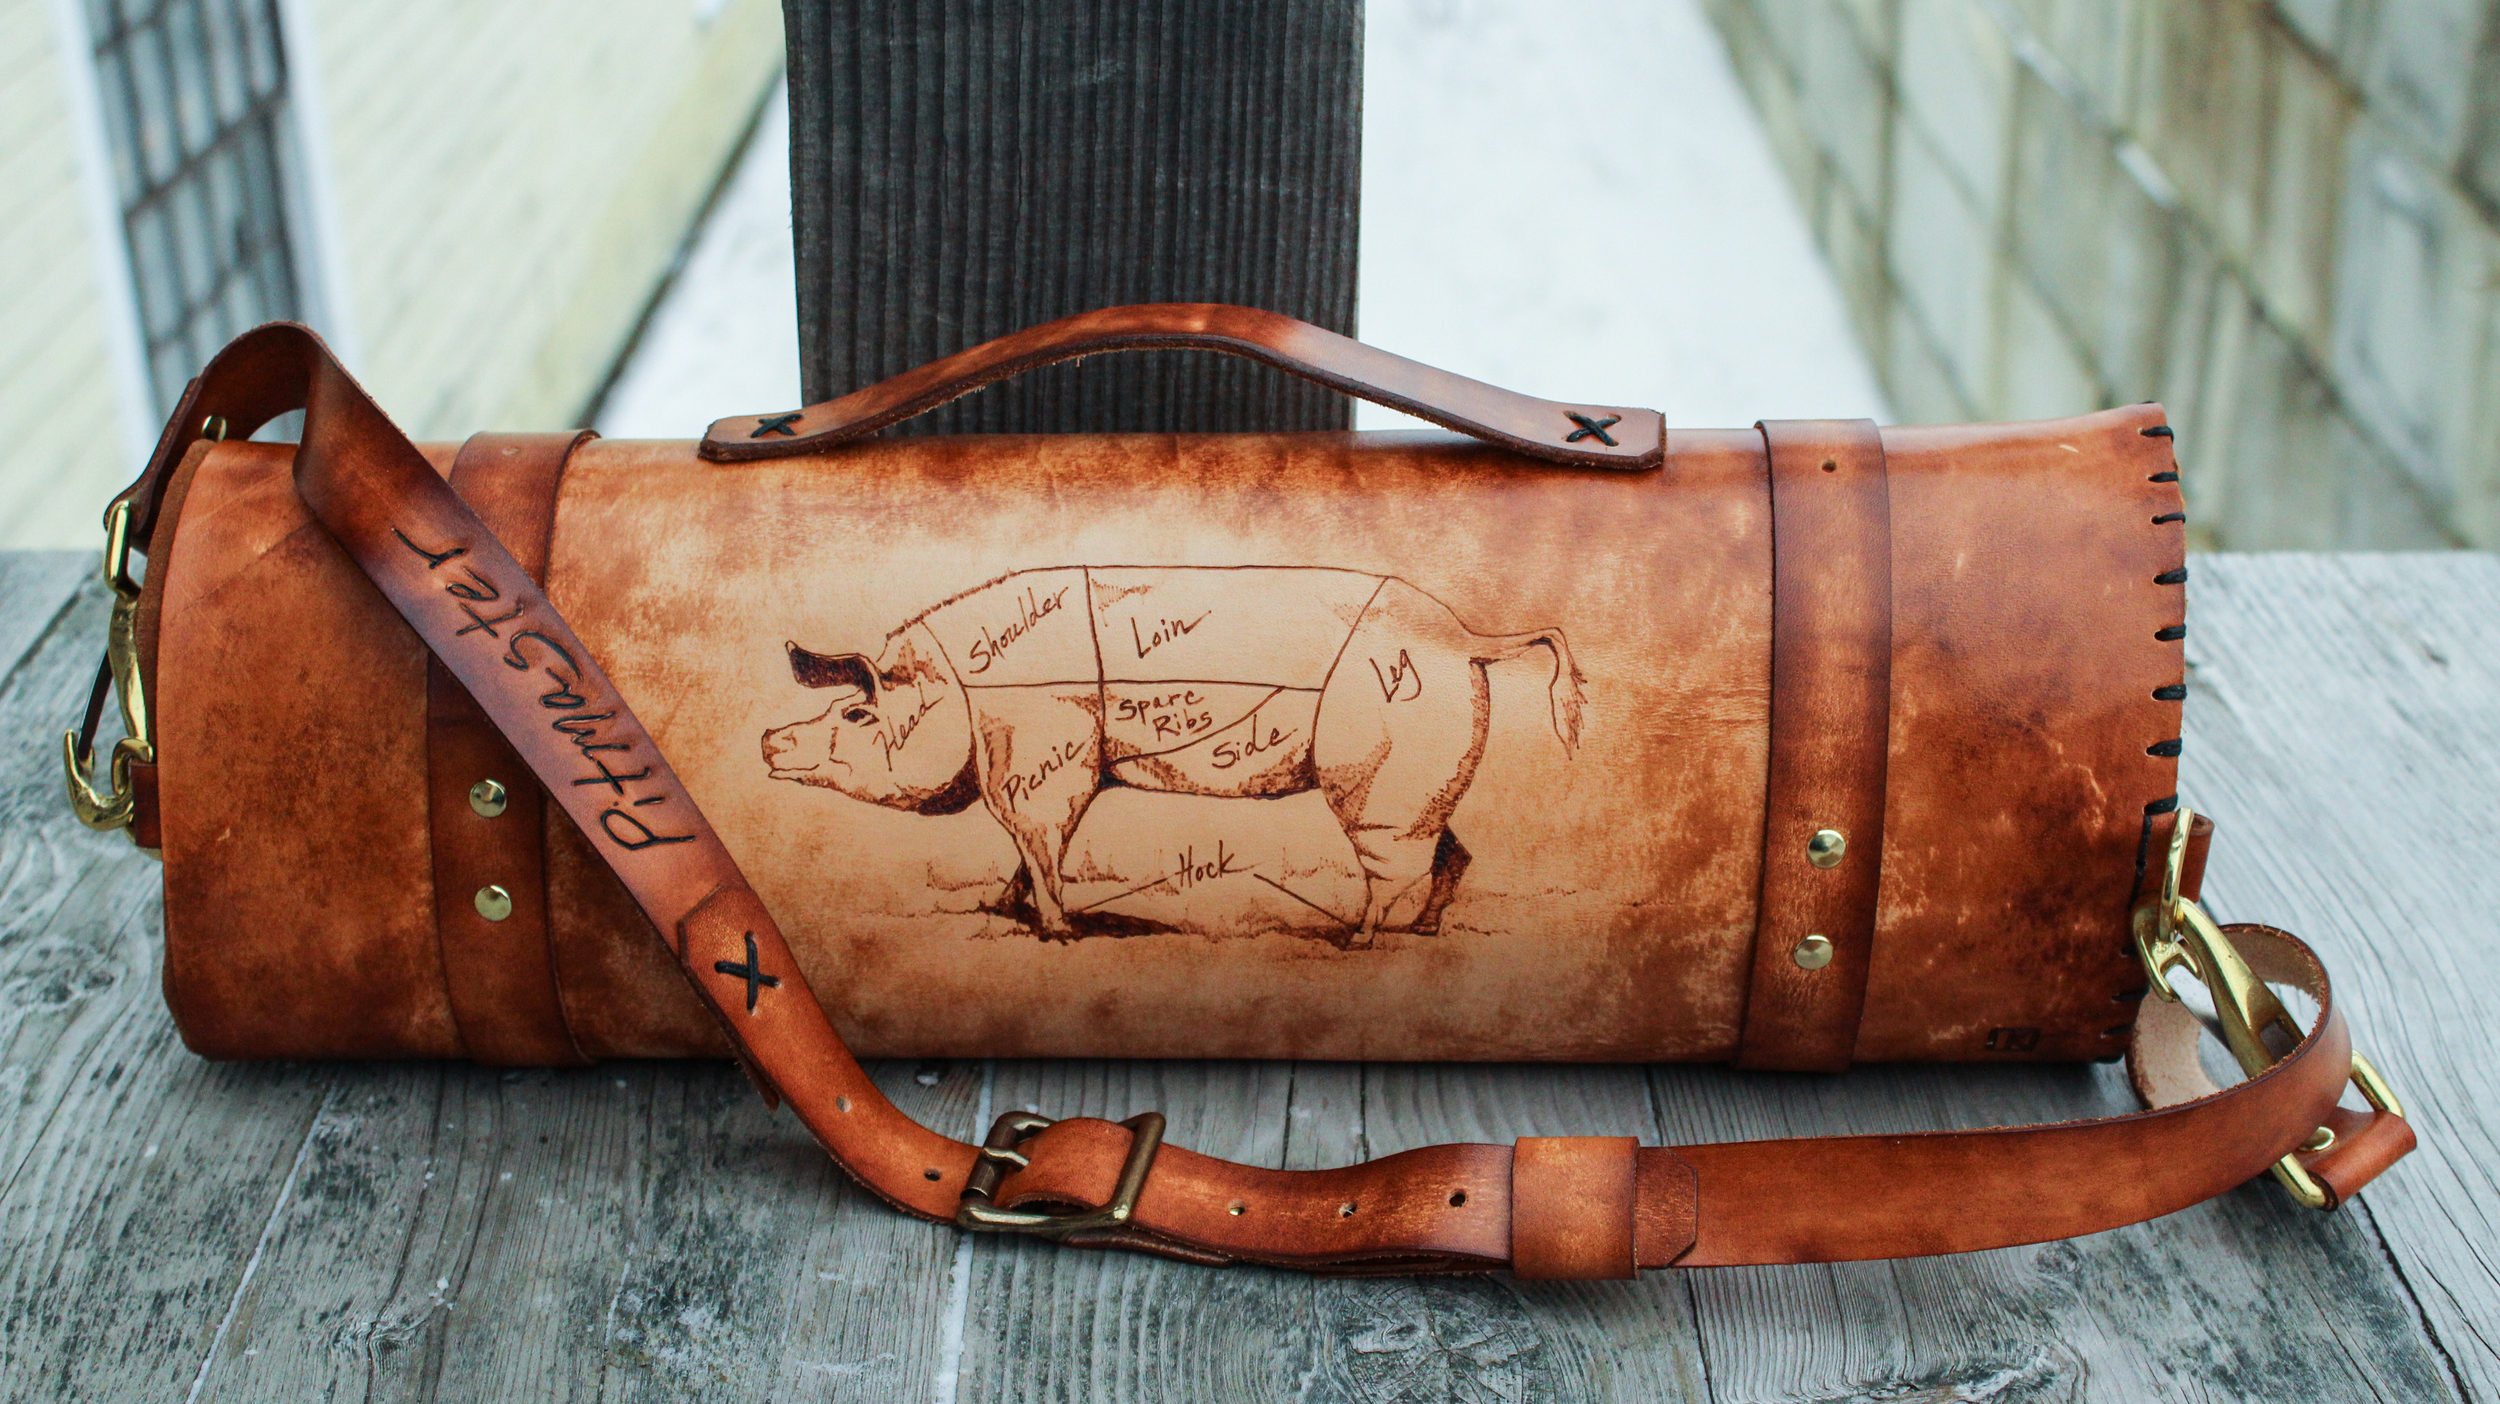 Longhorn cow leather knife roll